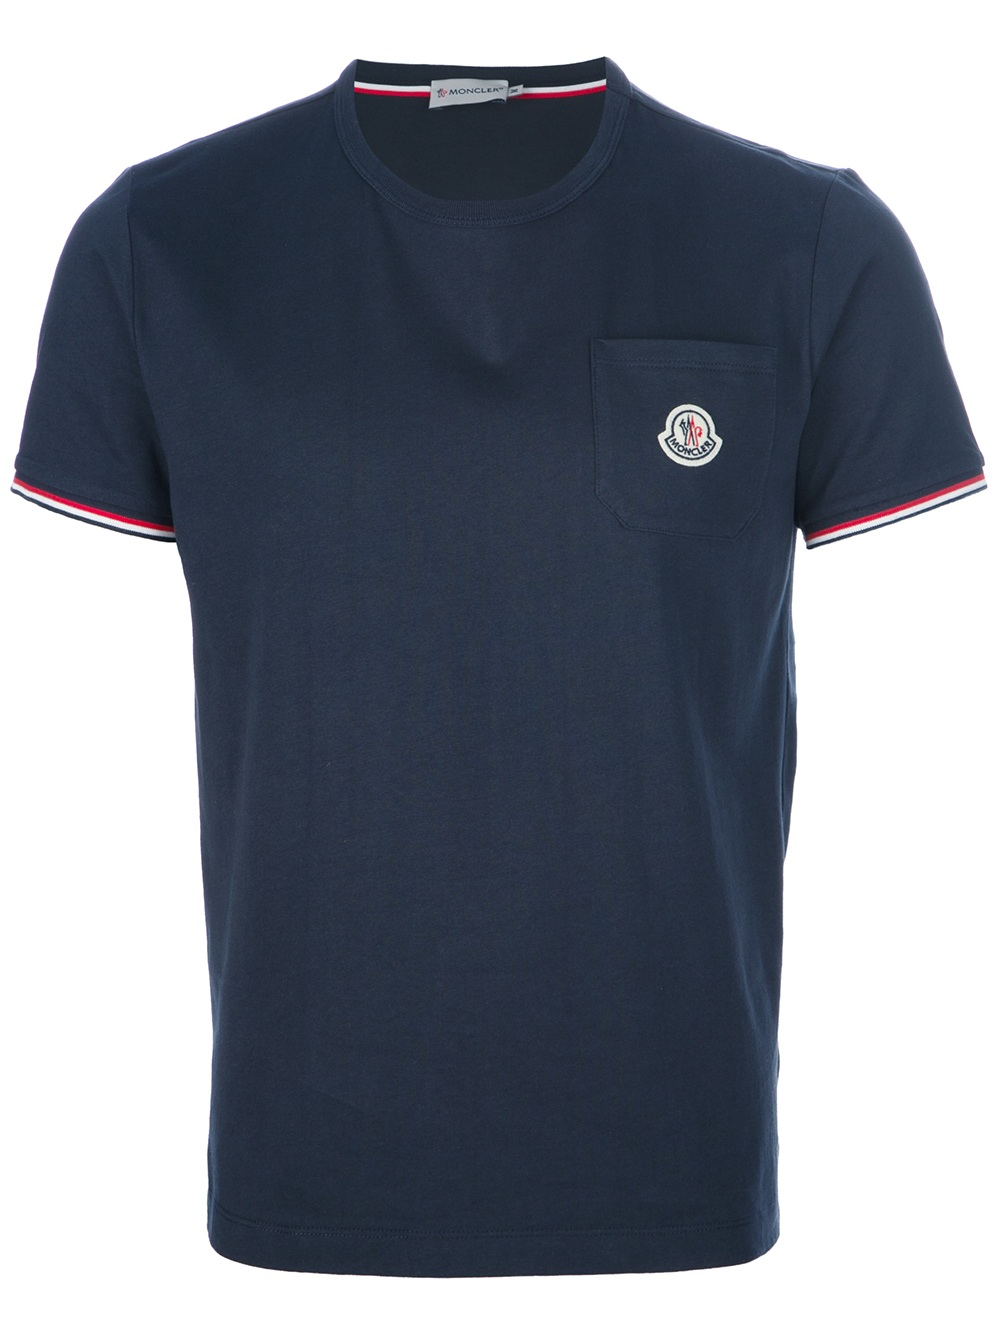 moncler logo pocket tshirt in blue for men lyst